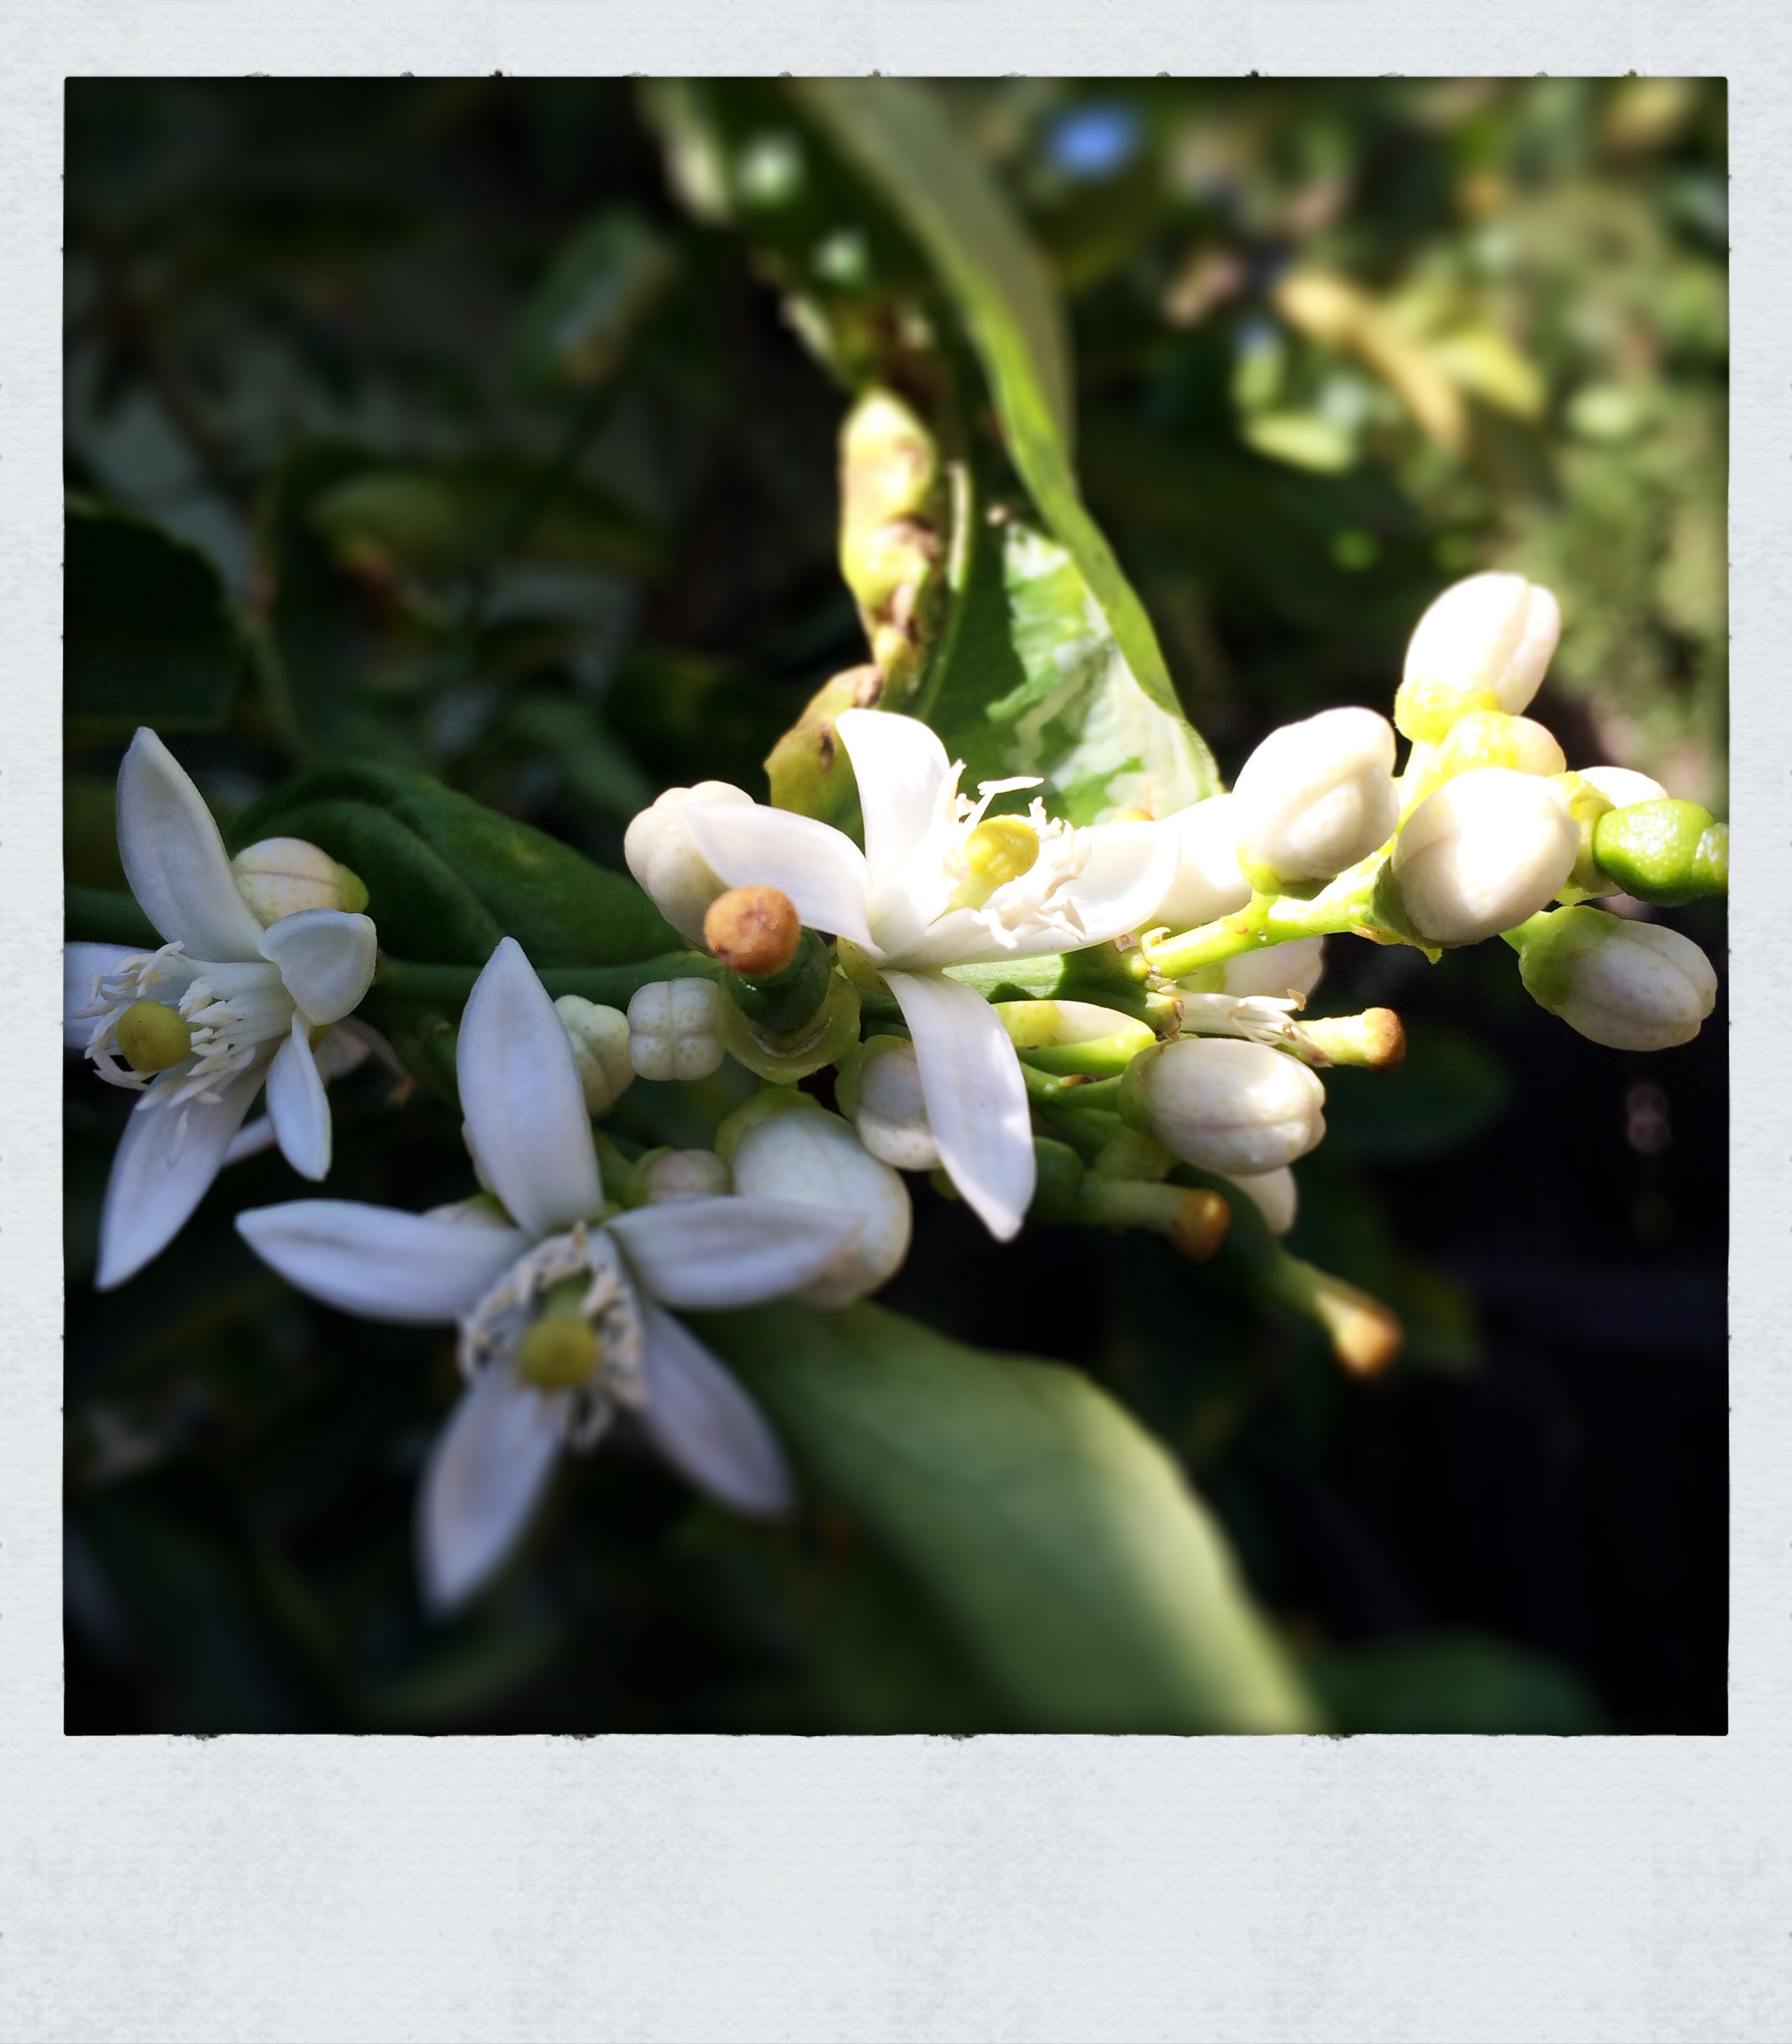 ... Wandered around my garden staring at everything in bloom due to the warm spell we'd been having. These are lime blossoms.